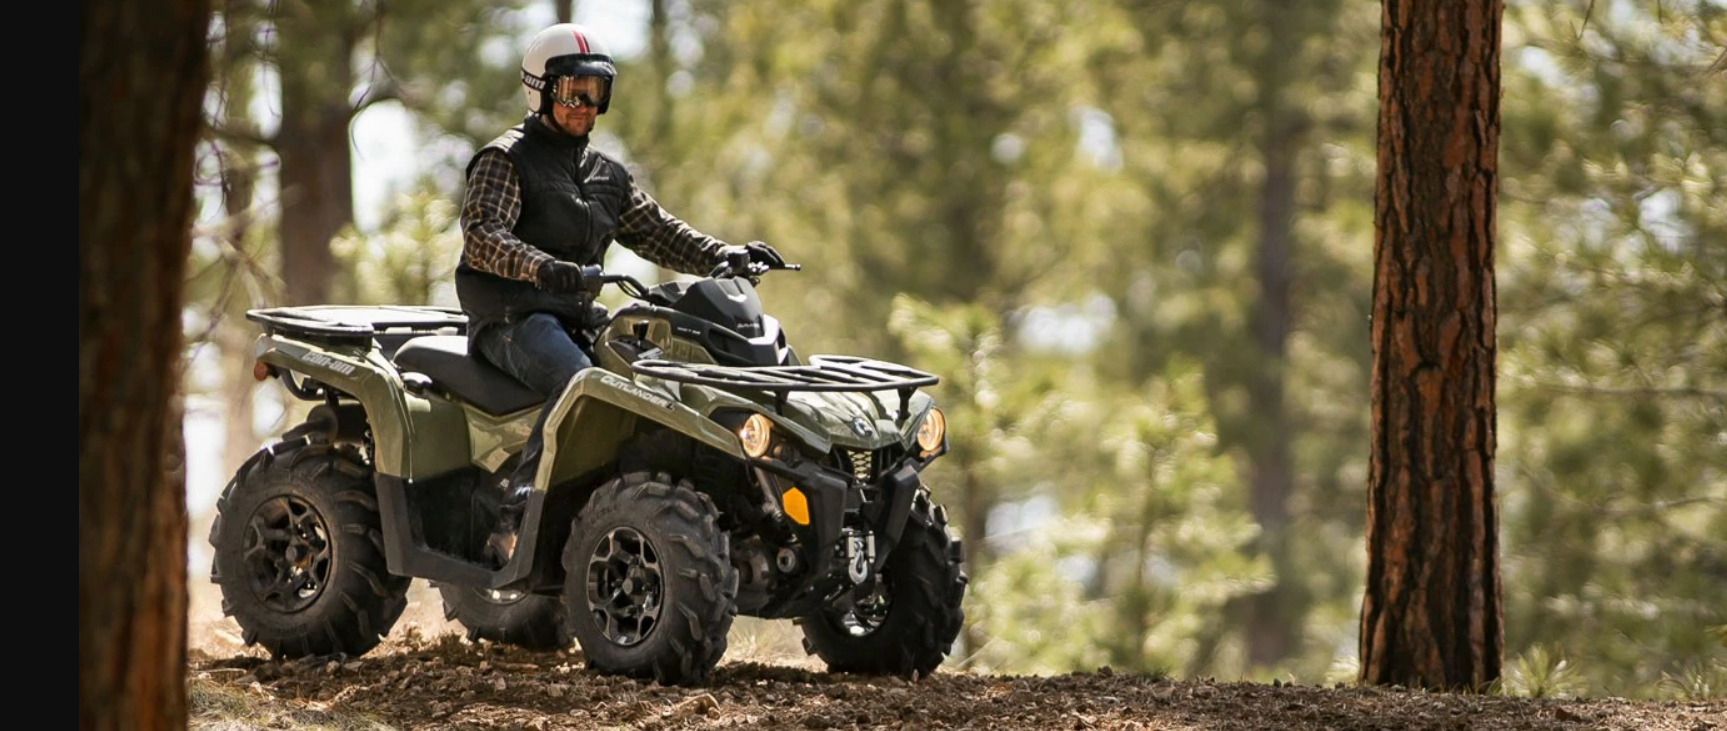 Can-Am Outlander ATV driving through a forest